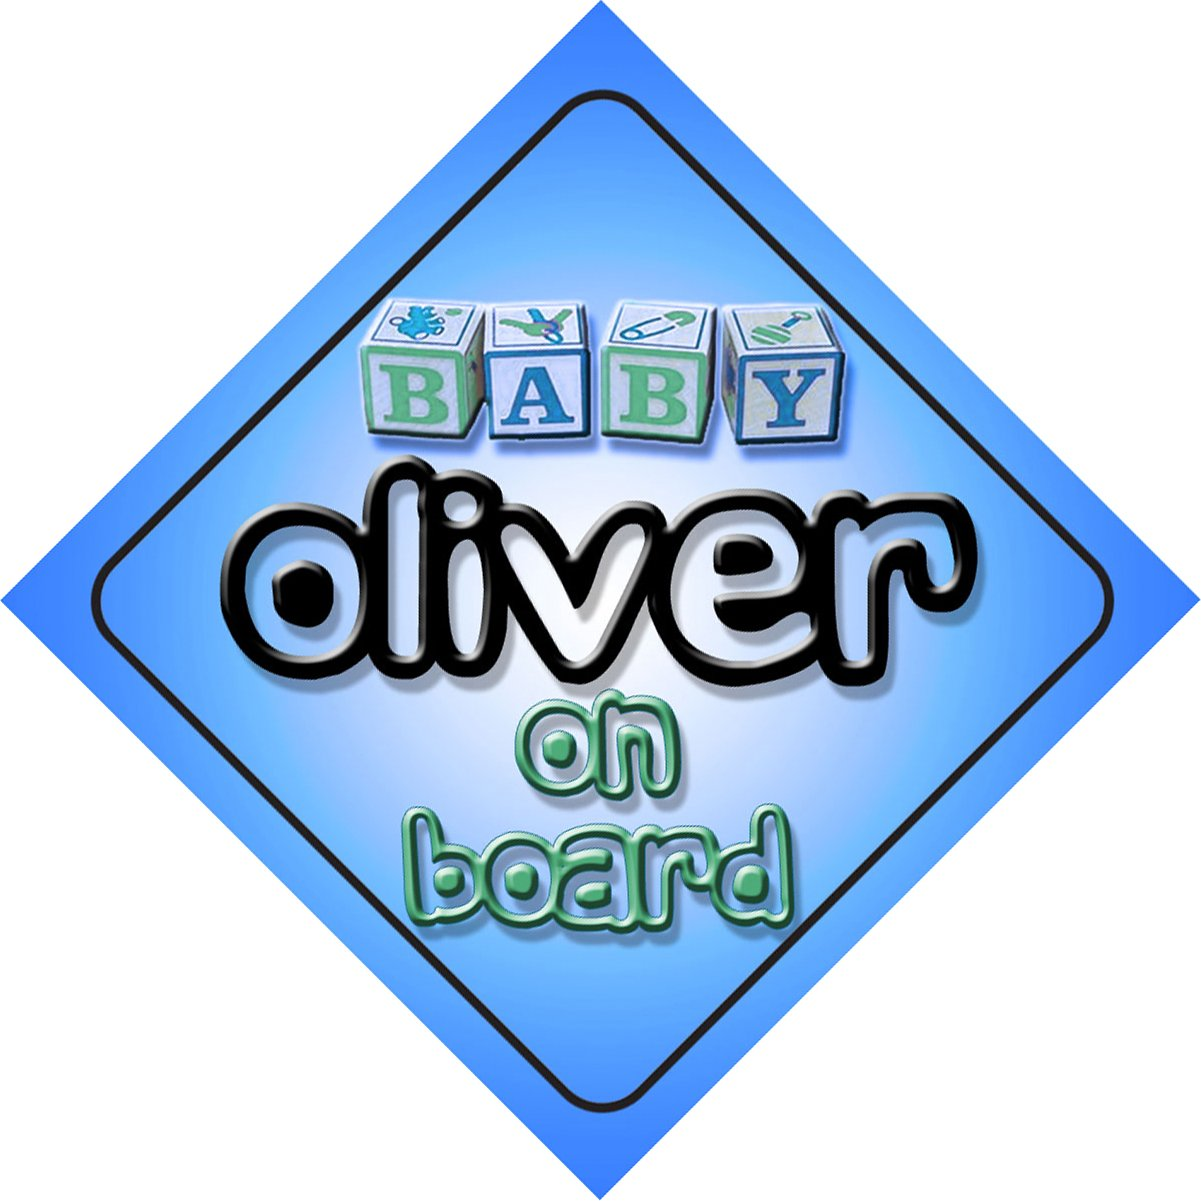 Baby Boy Oliver on board novelty car sign gift/present for new child/newborn baby